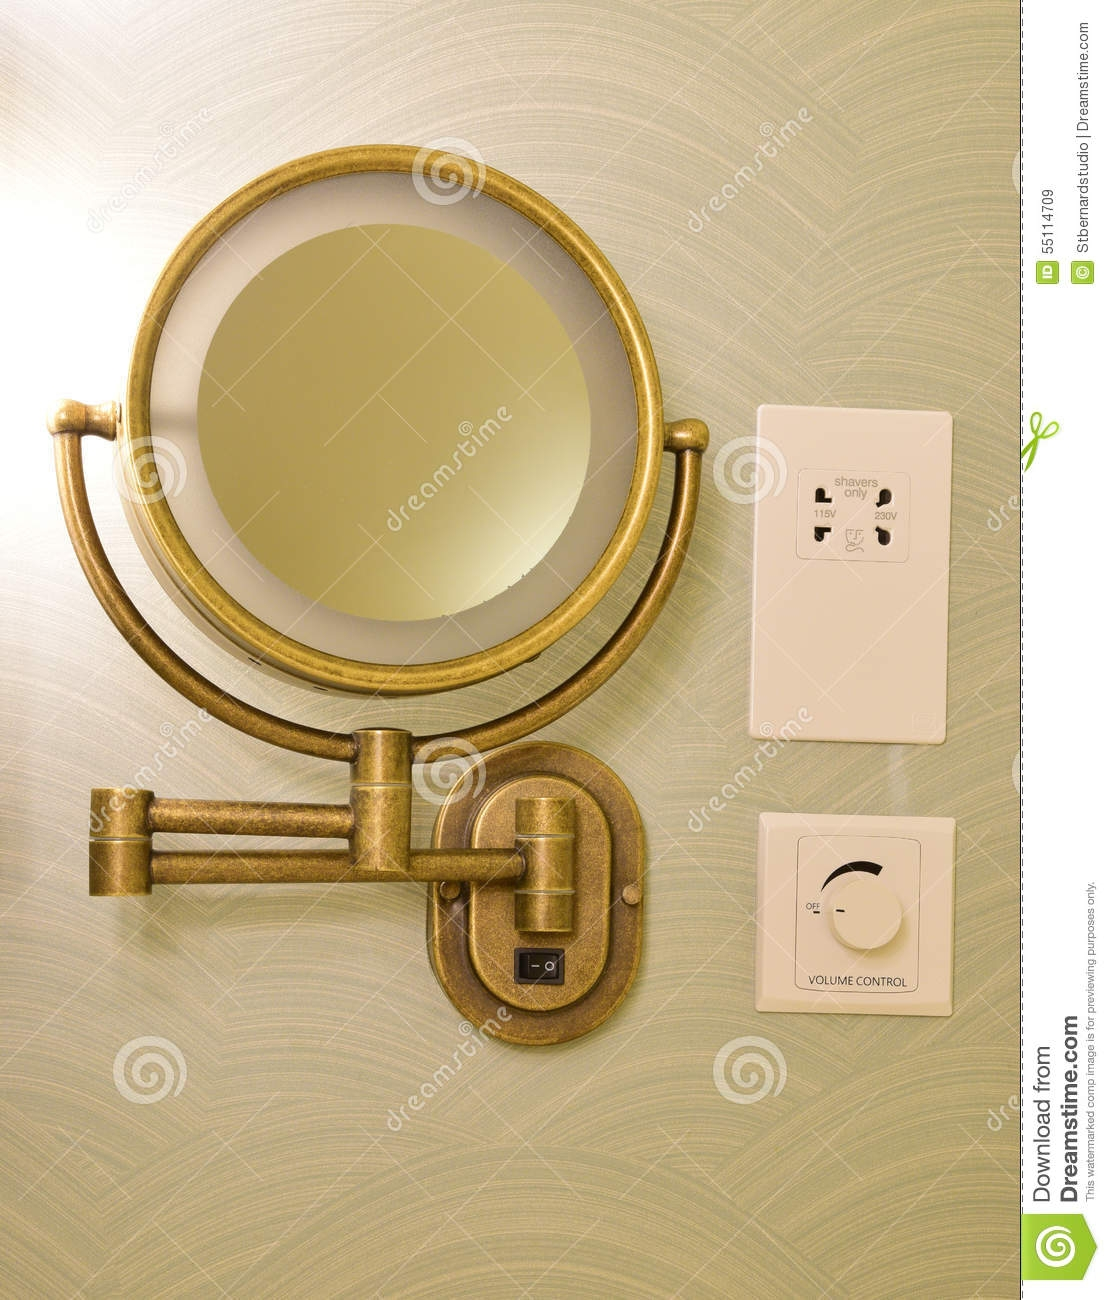 Brass Wall Mount Mirror Brass Wall Mount Mirror vintage look brass adjustable wall mount magnifying mirror on half 1110 X 1300